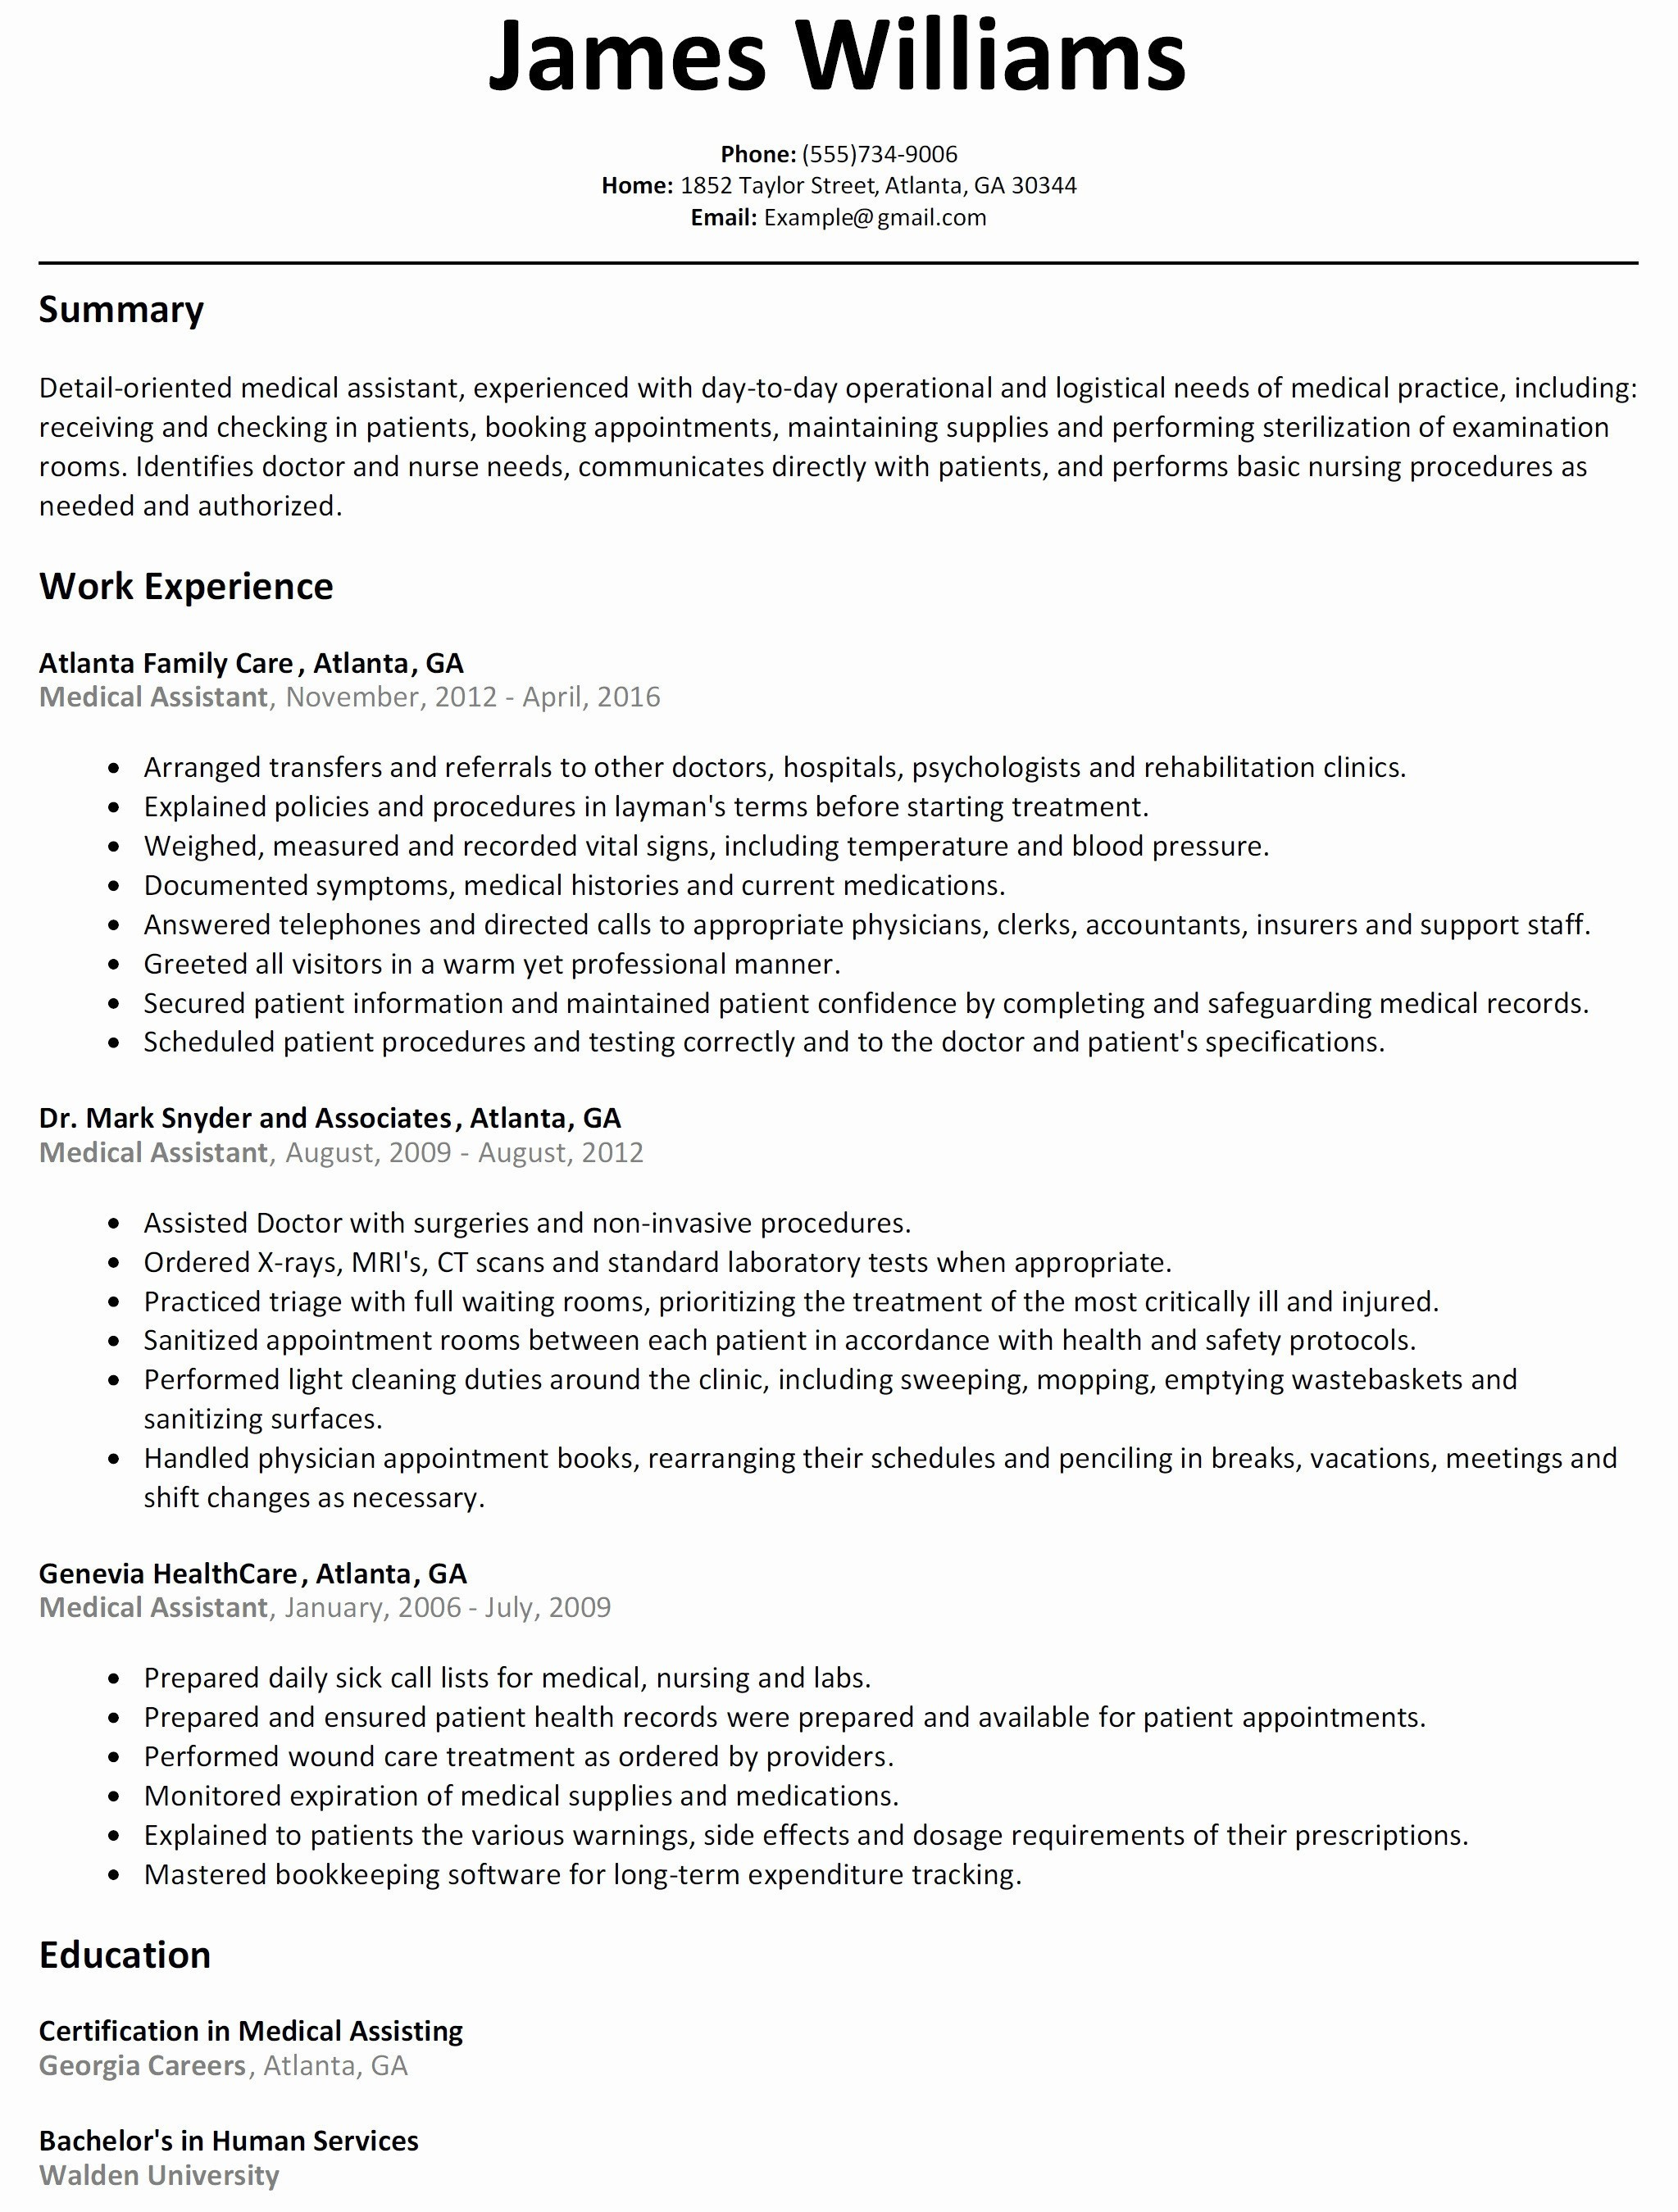 Recent High School Graduate Resume - Post Graduate Resume Inspirational Resume Samples for Recent High